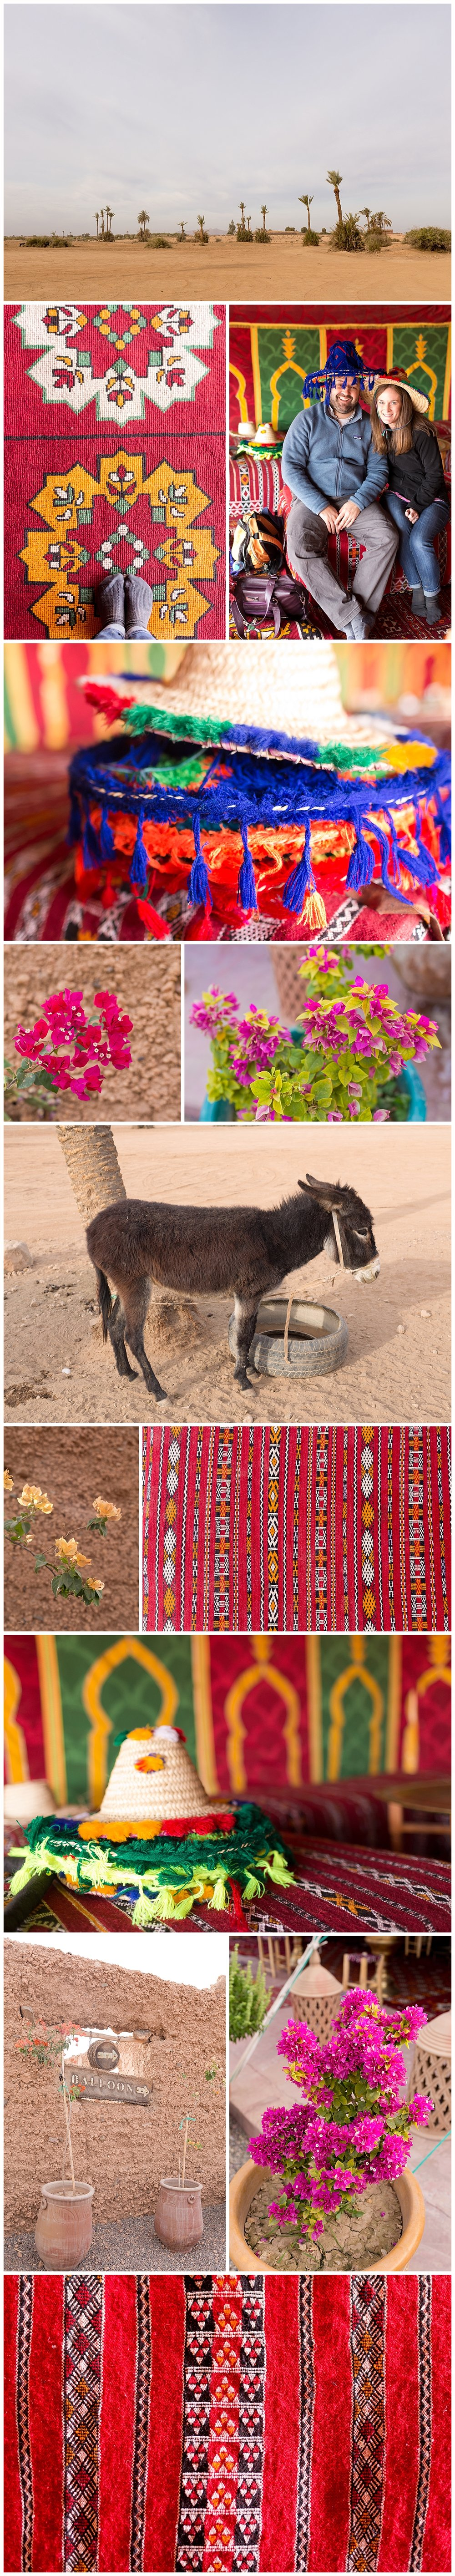 Berber Moroccan rugs and decor in the desert - colorful Moroccan decor